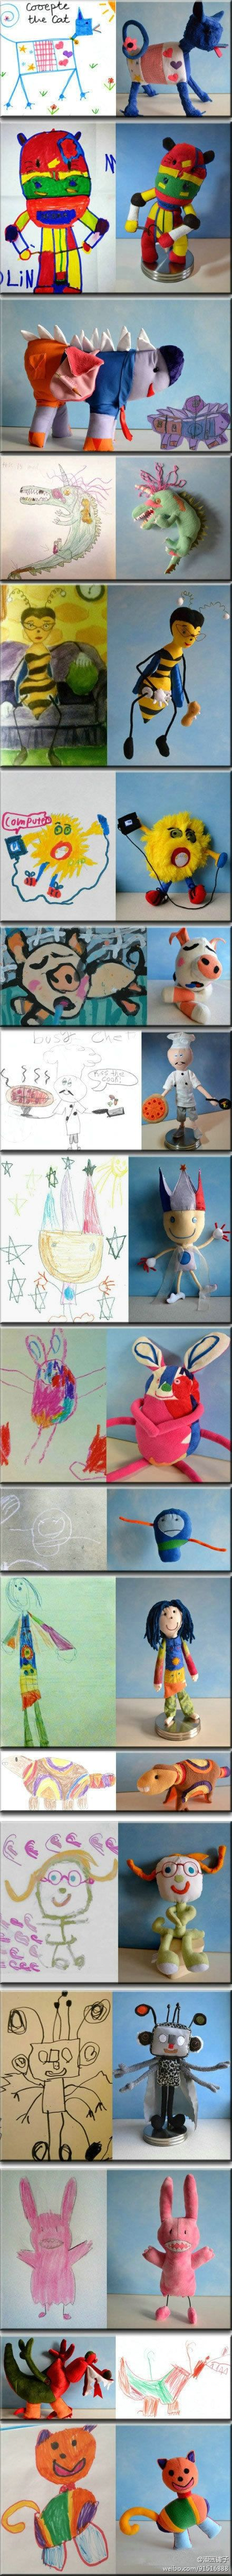 Absolutely a must do for the kids! Awesome keepsake! stuffed animal from kid's drawing